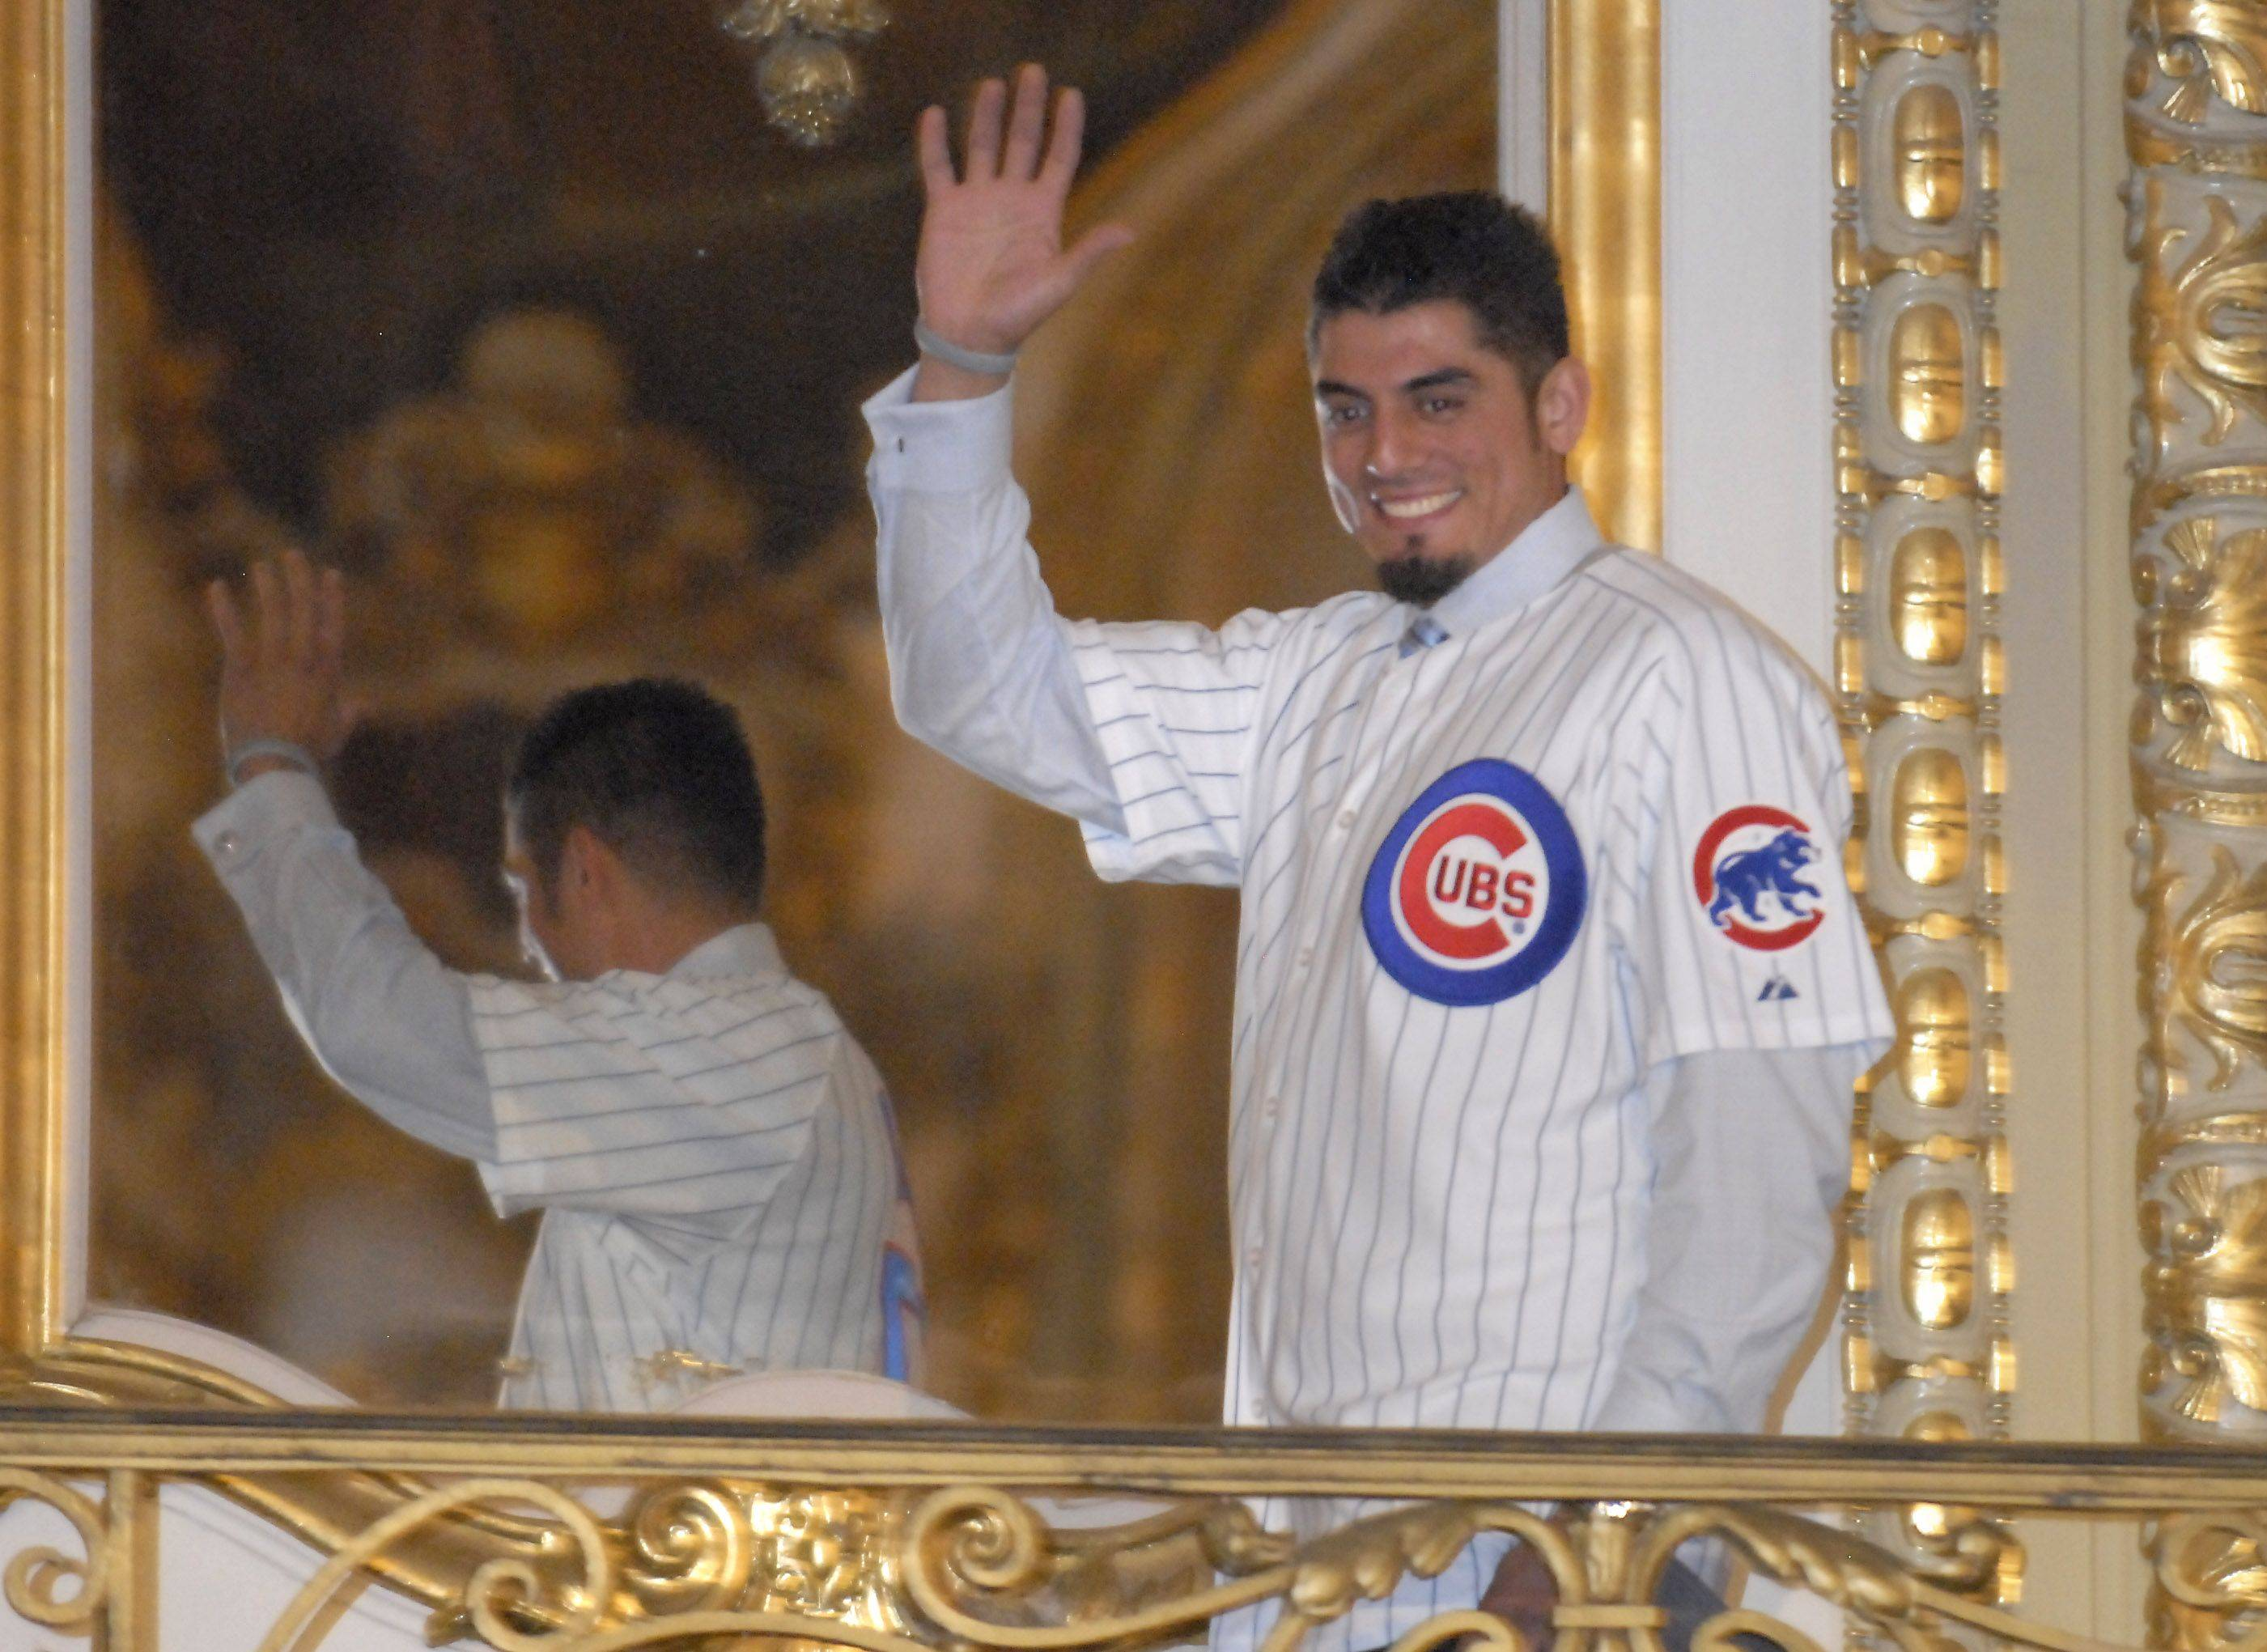 Pitcher Matt Garza gives a big smile to the crowd.